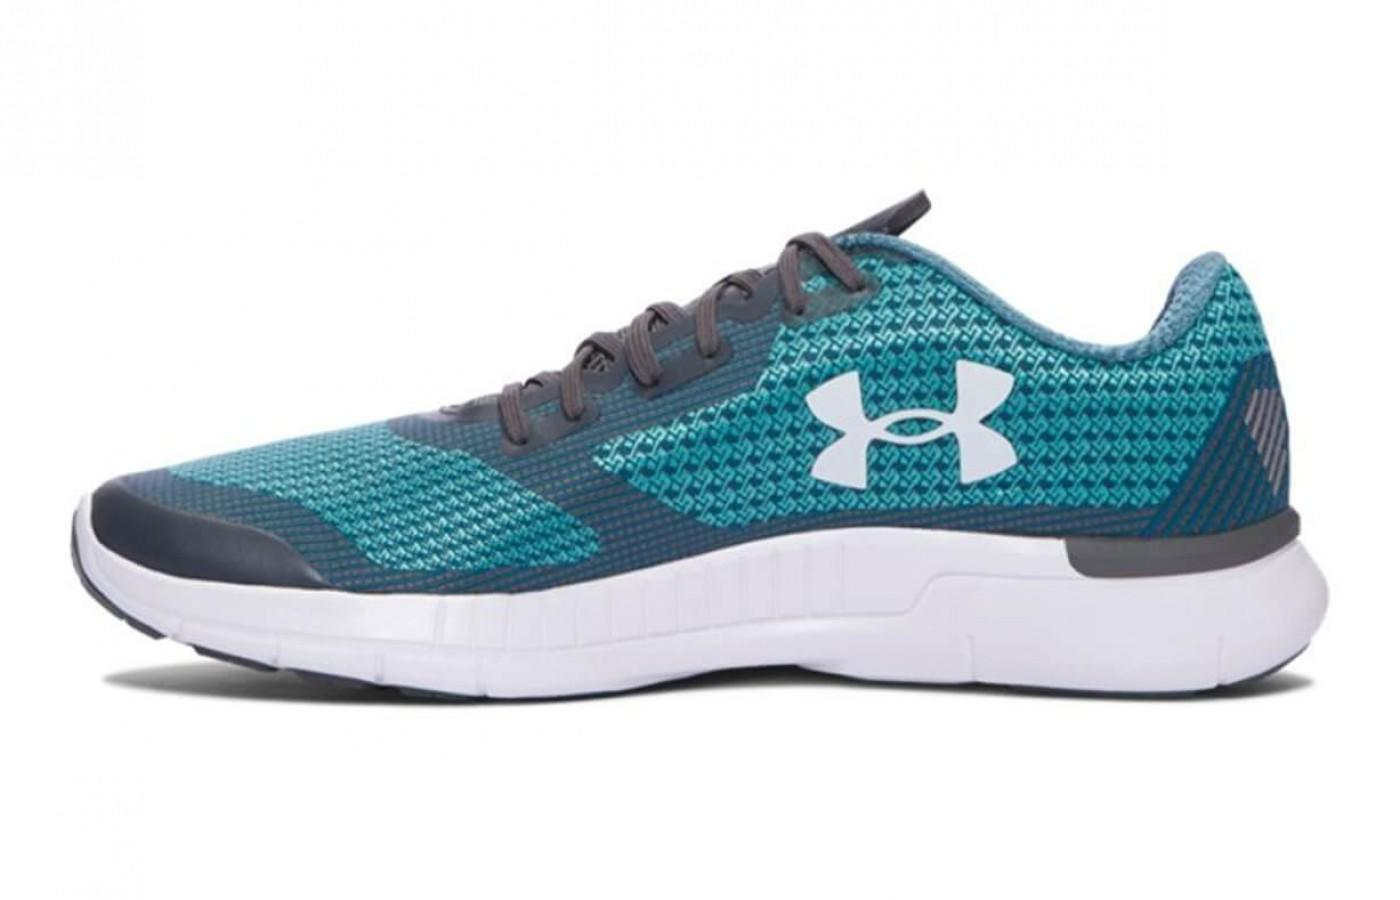 the Under Armour Charged Lightning features a low profile and a comfortable fit